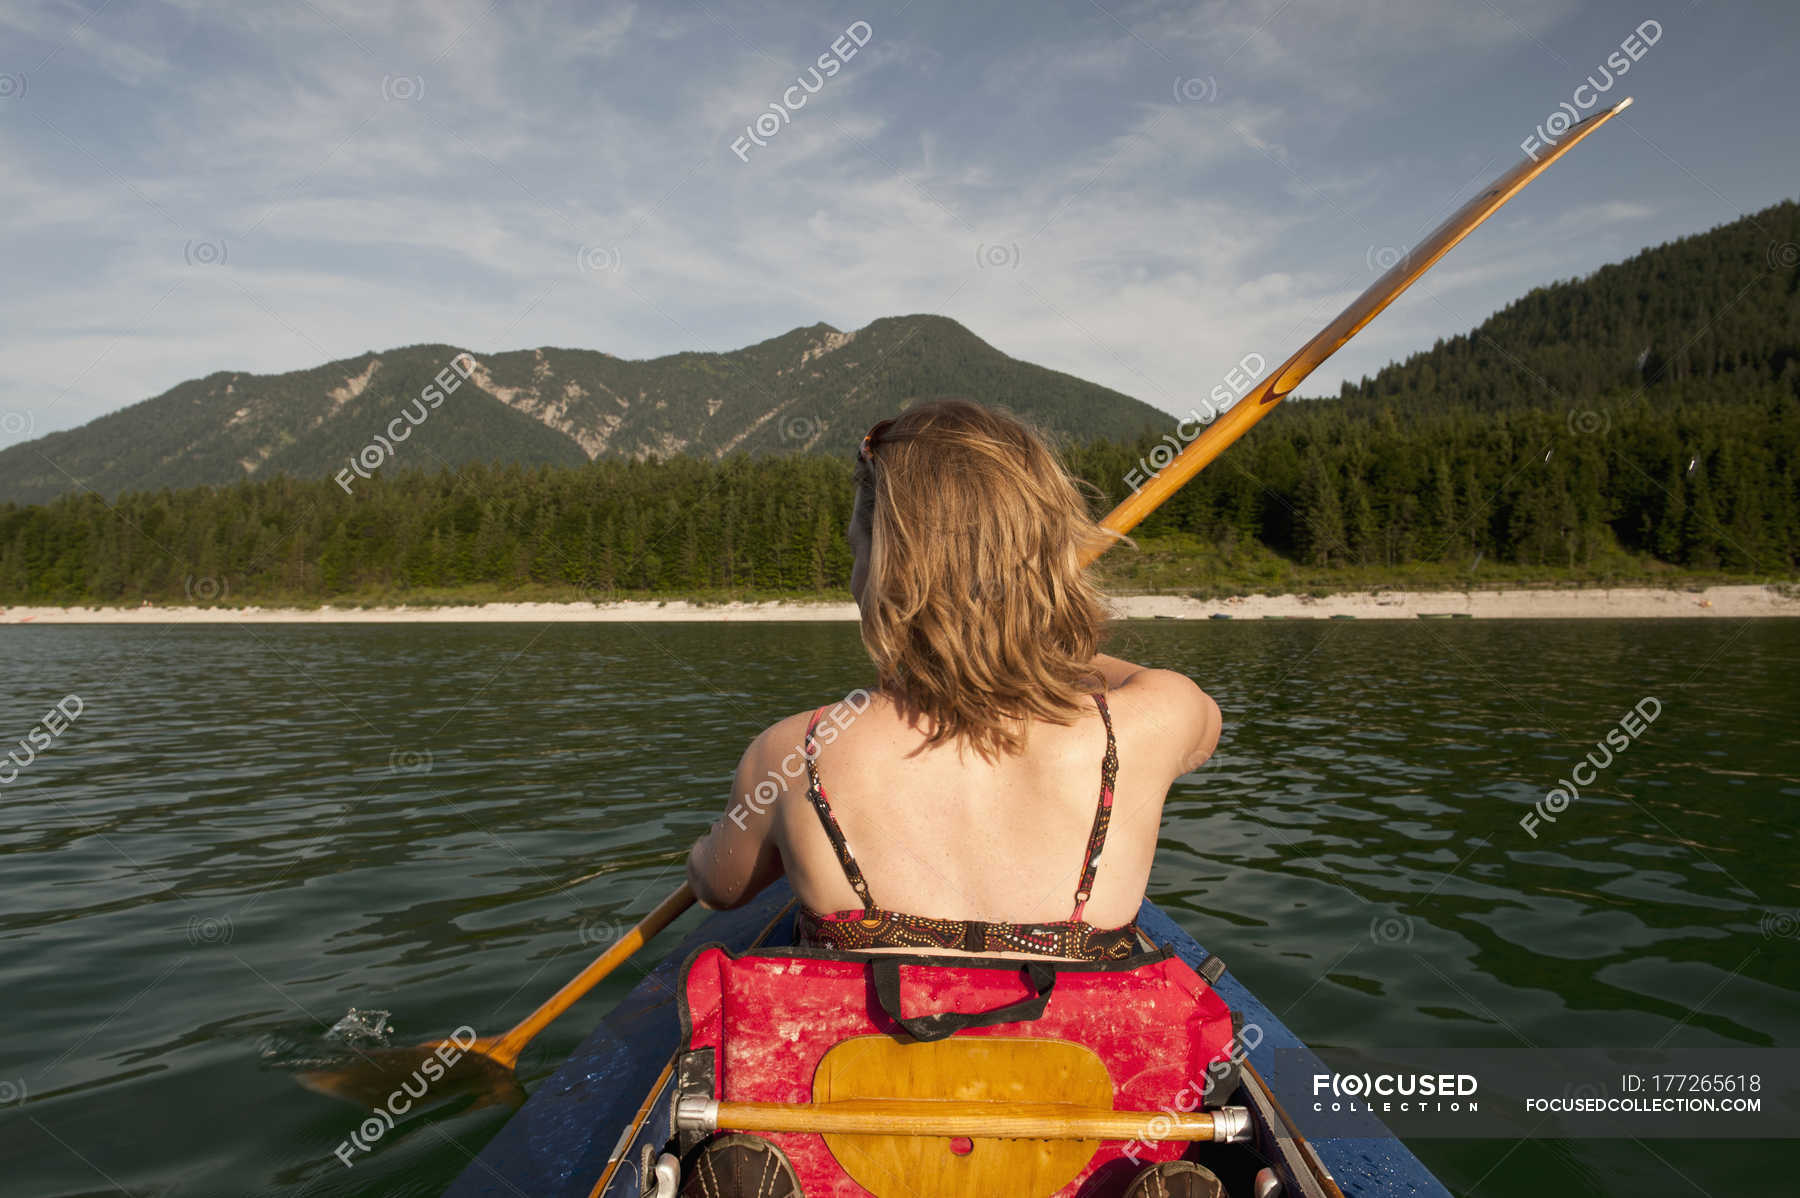 Rear view of woman paddling canoe over mountain range on 1800x1198